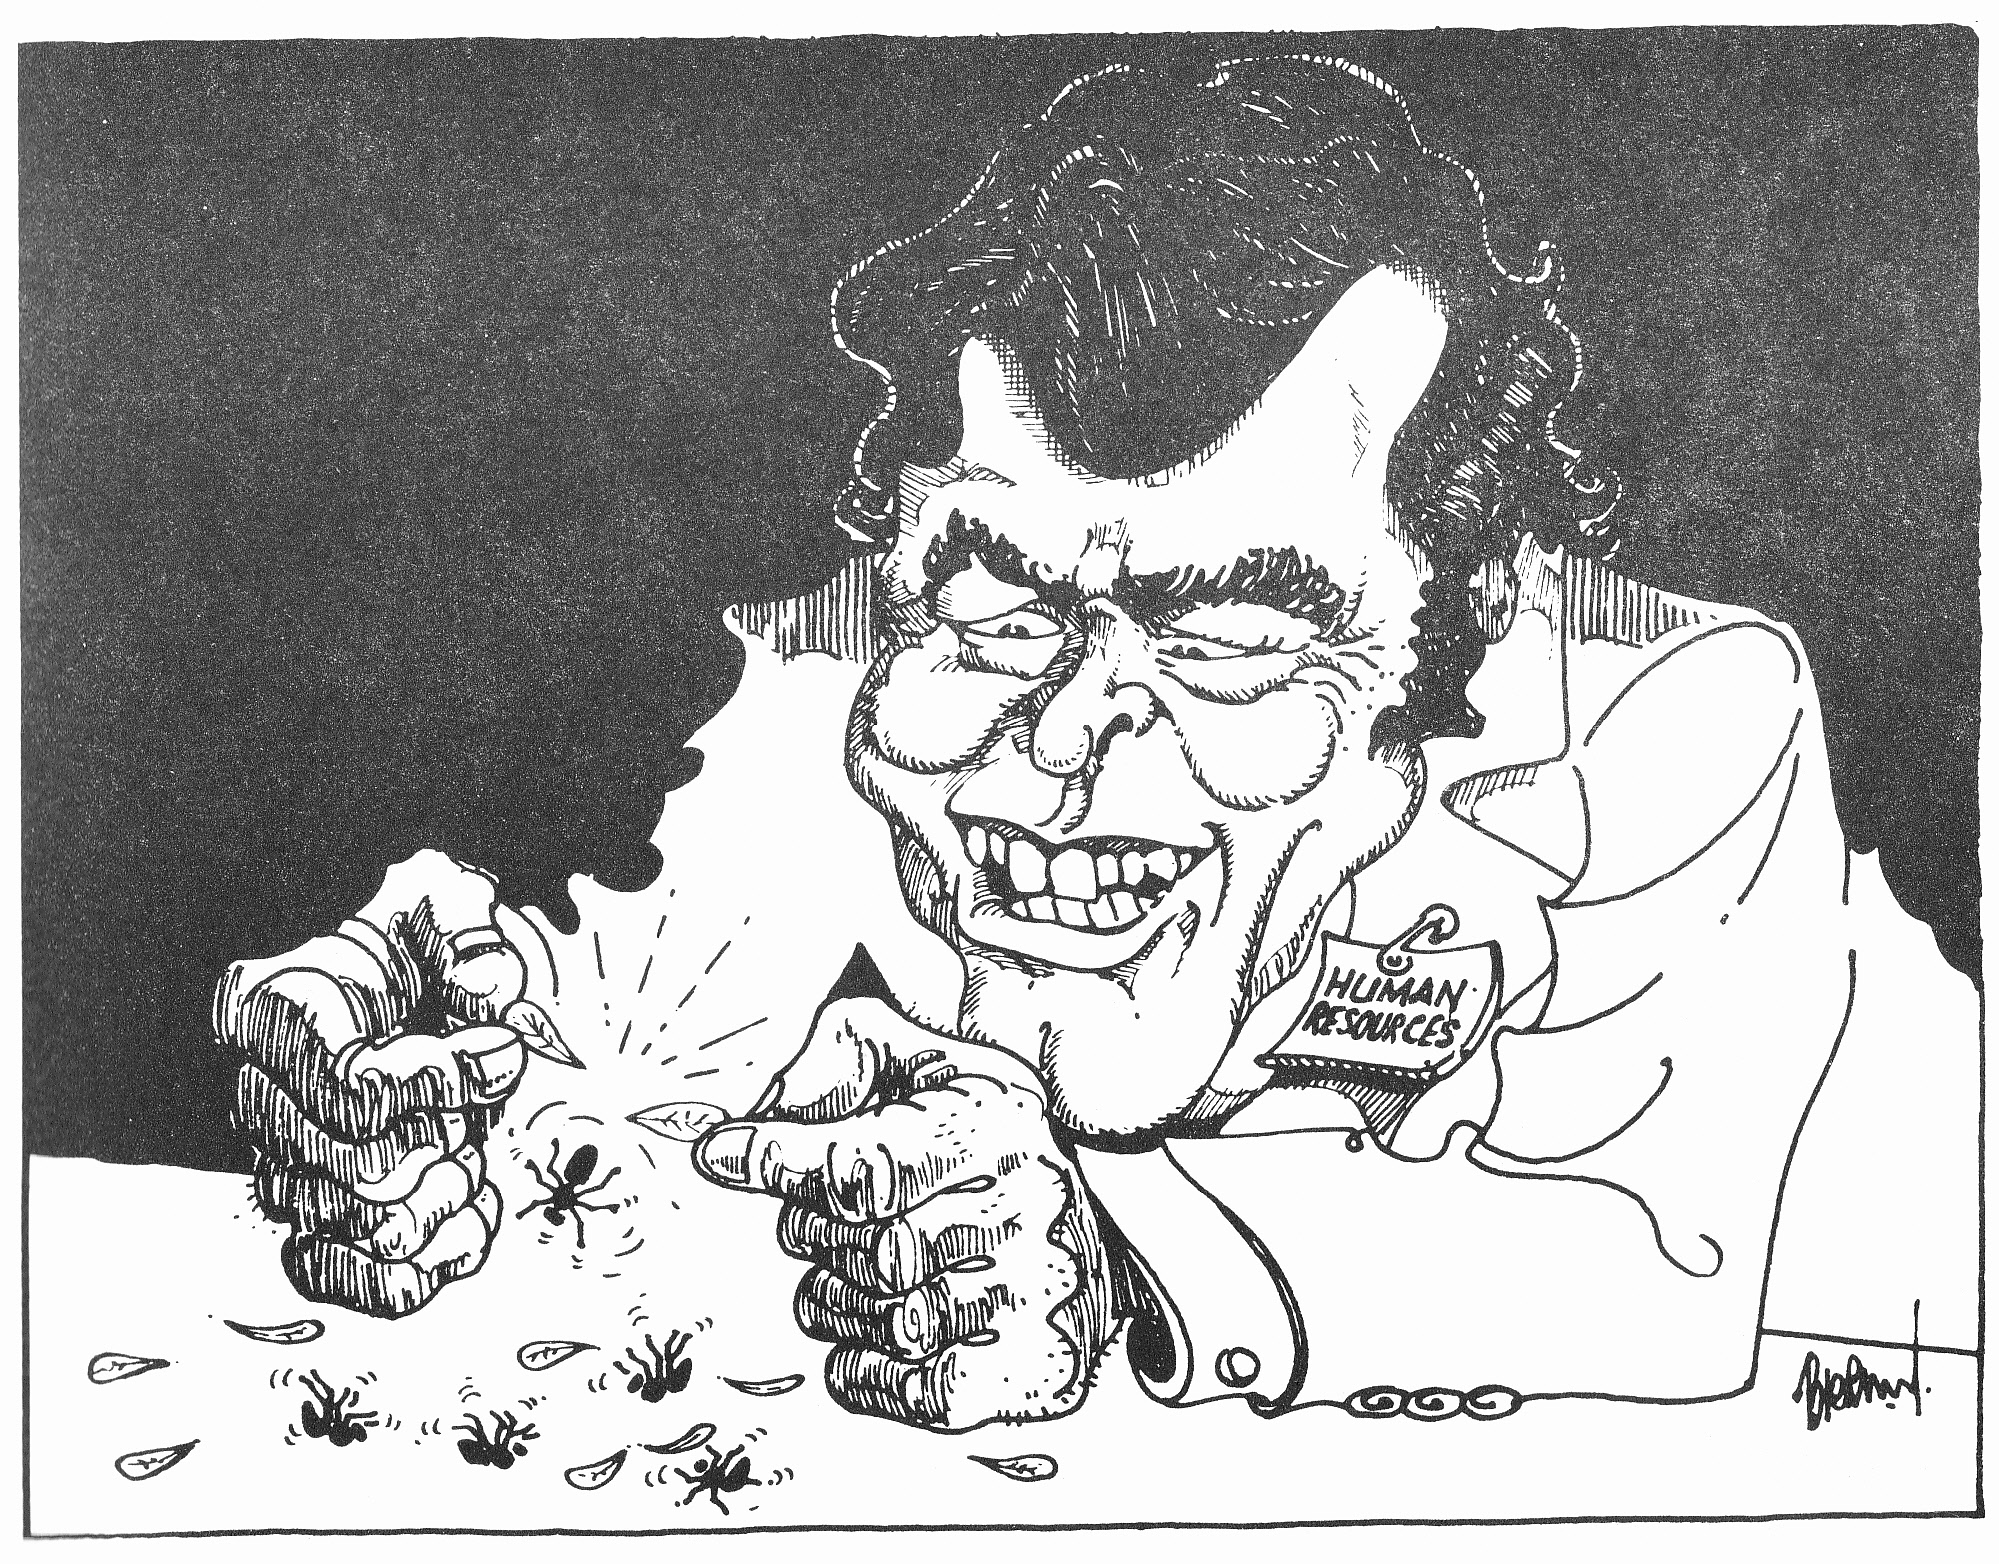 C:\Users\Robert\Documents\CARTOONING ILLUSTRATION ANIMATION\IMAGE BY CARTOONIST\B\BIERMAN Bob, 1984 A Collection of Cartoons _0001.jpg